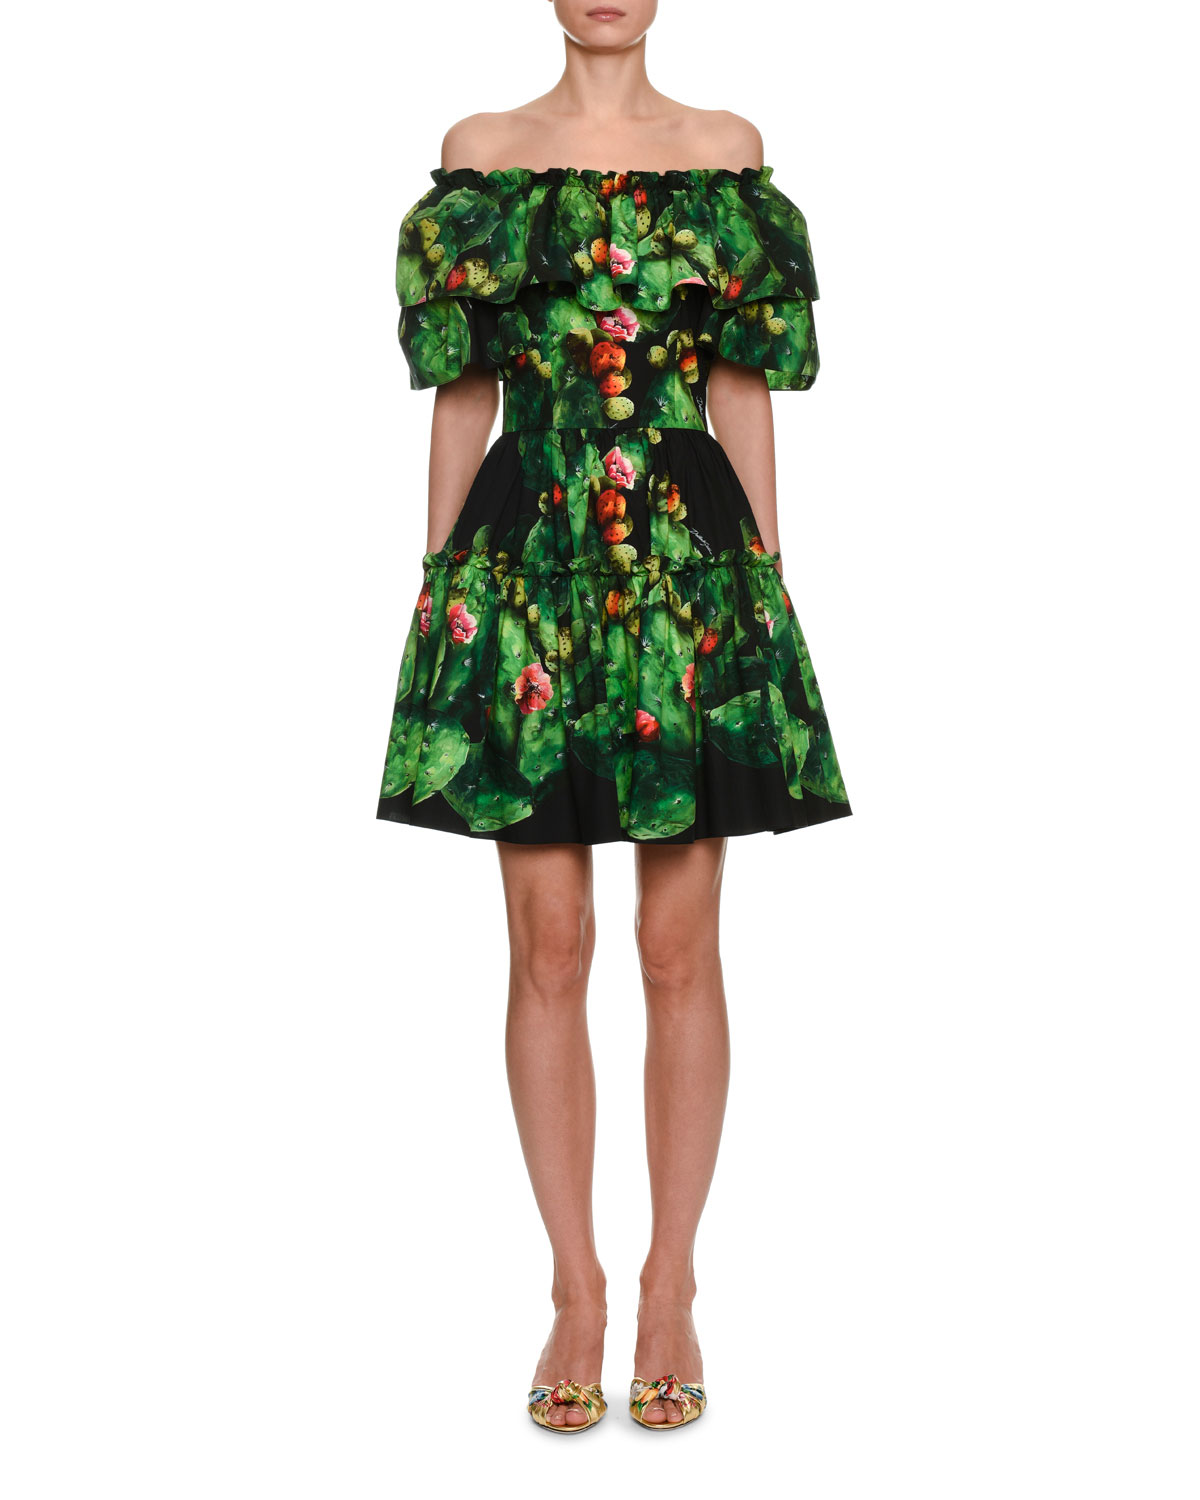 Dolce & Gabbana Cactus & Floral Print Cotton Poplin Mini Dress